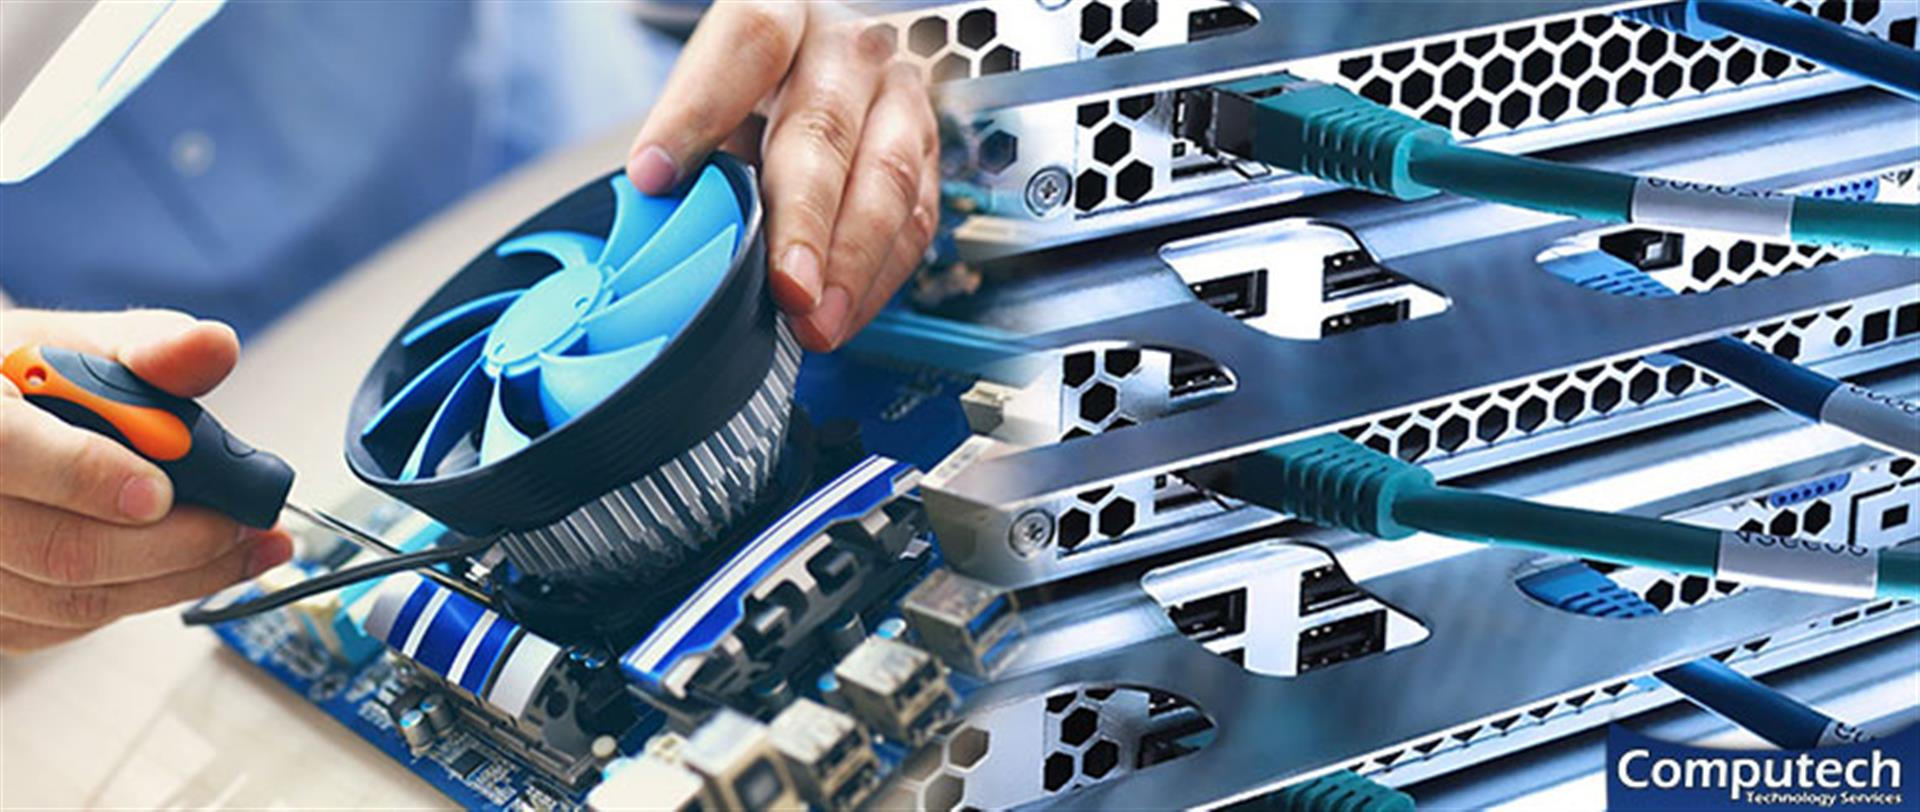 Henderson Tennessee On-Site Computer and Printer Repairs, Networking, Voice & Data Cabling Services